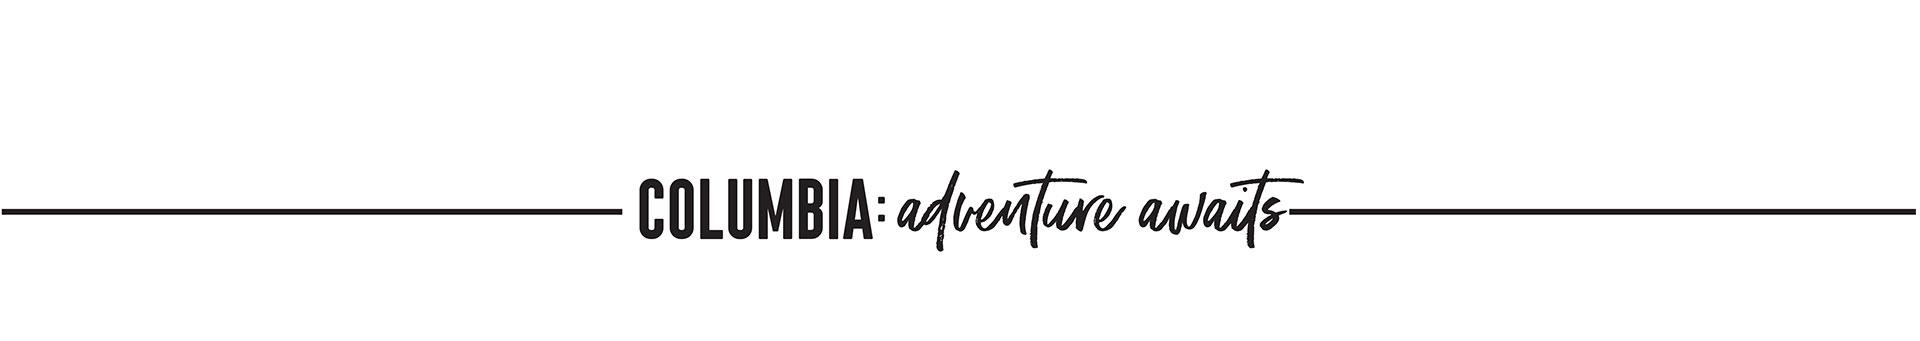 COLUMBIA: ADVENTURE AWAITS